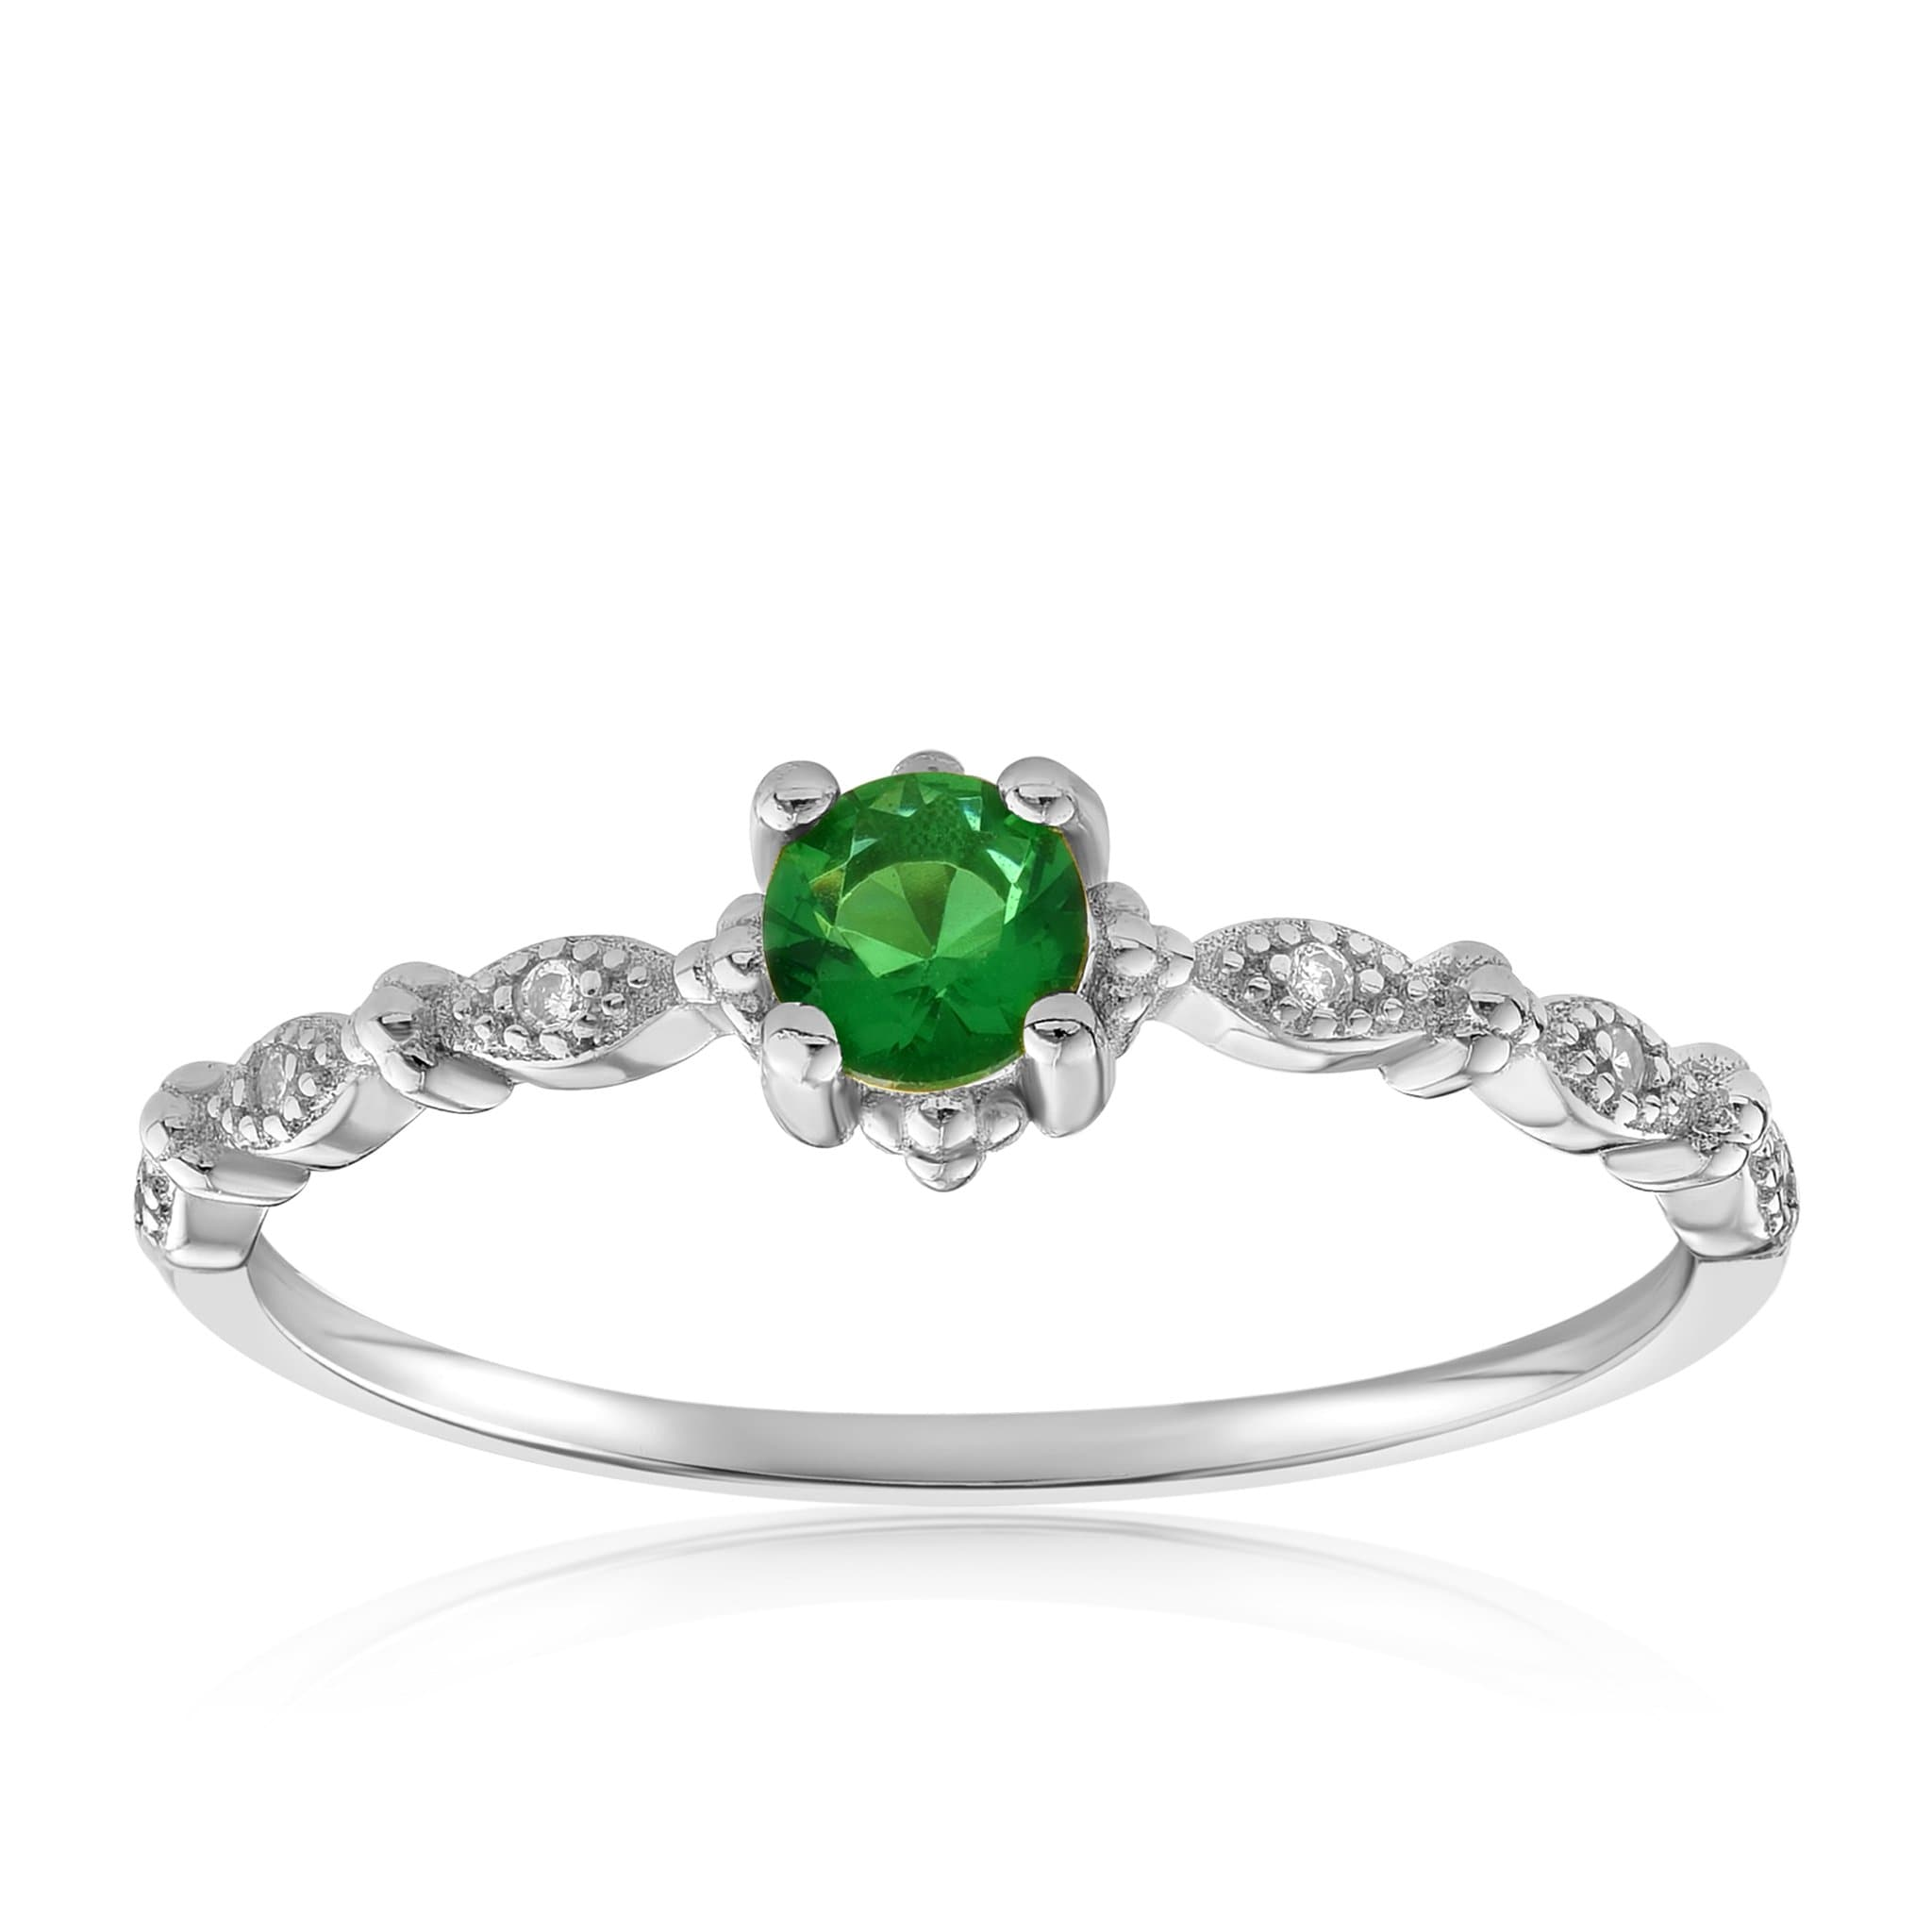 Garen Ring Green Gemstone - Front View Facing Up - 925 Sterling Silver